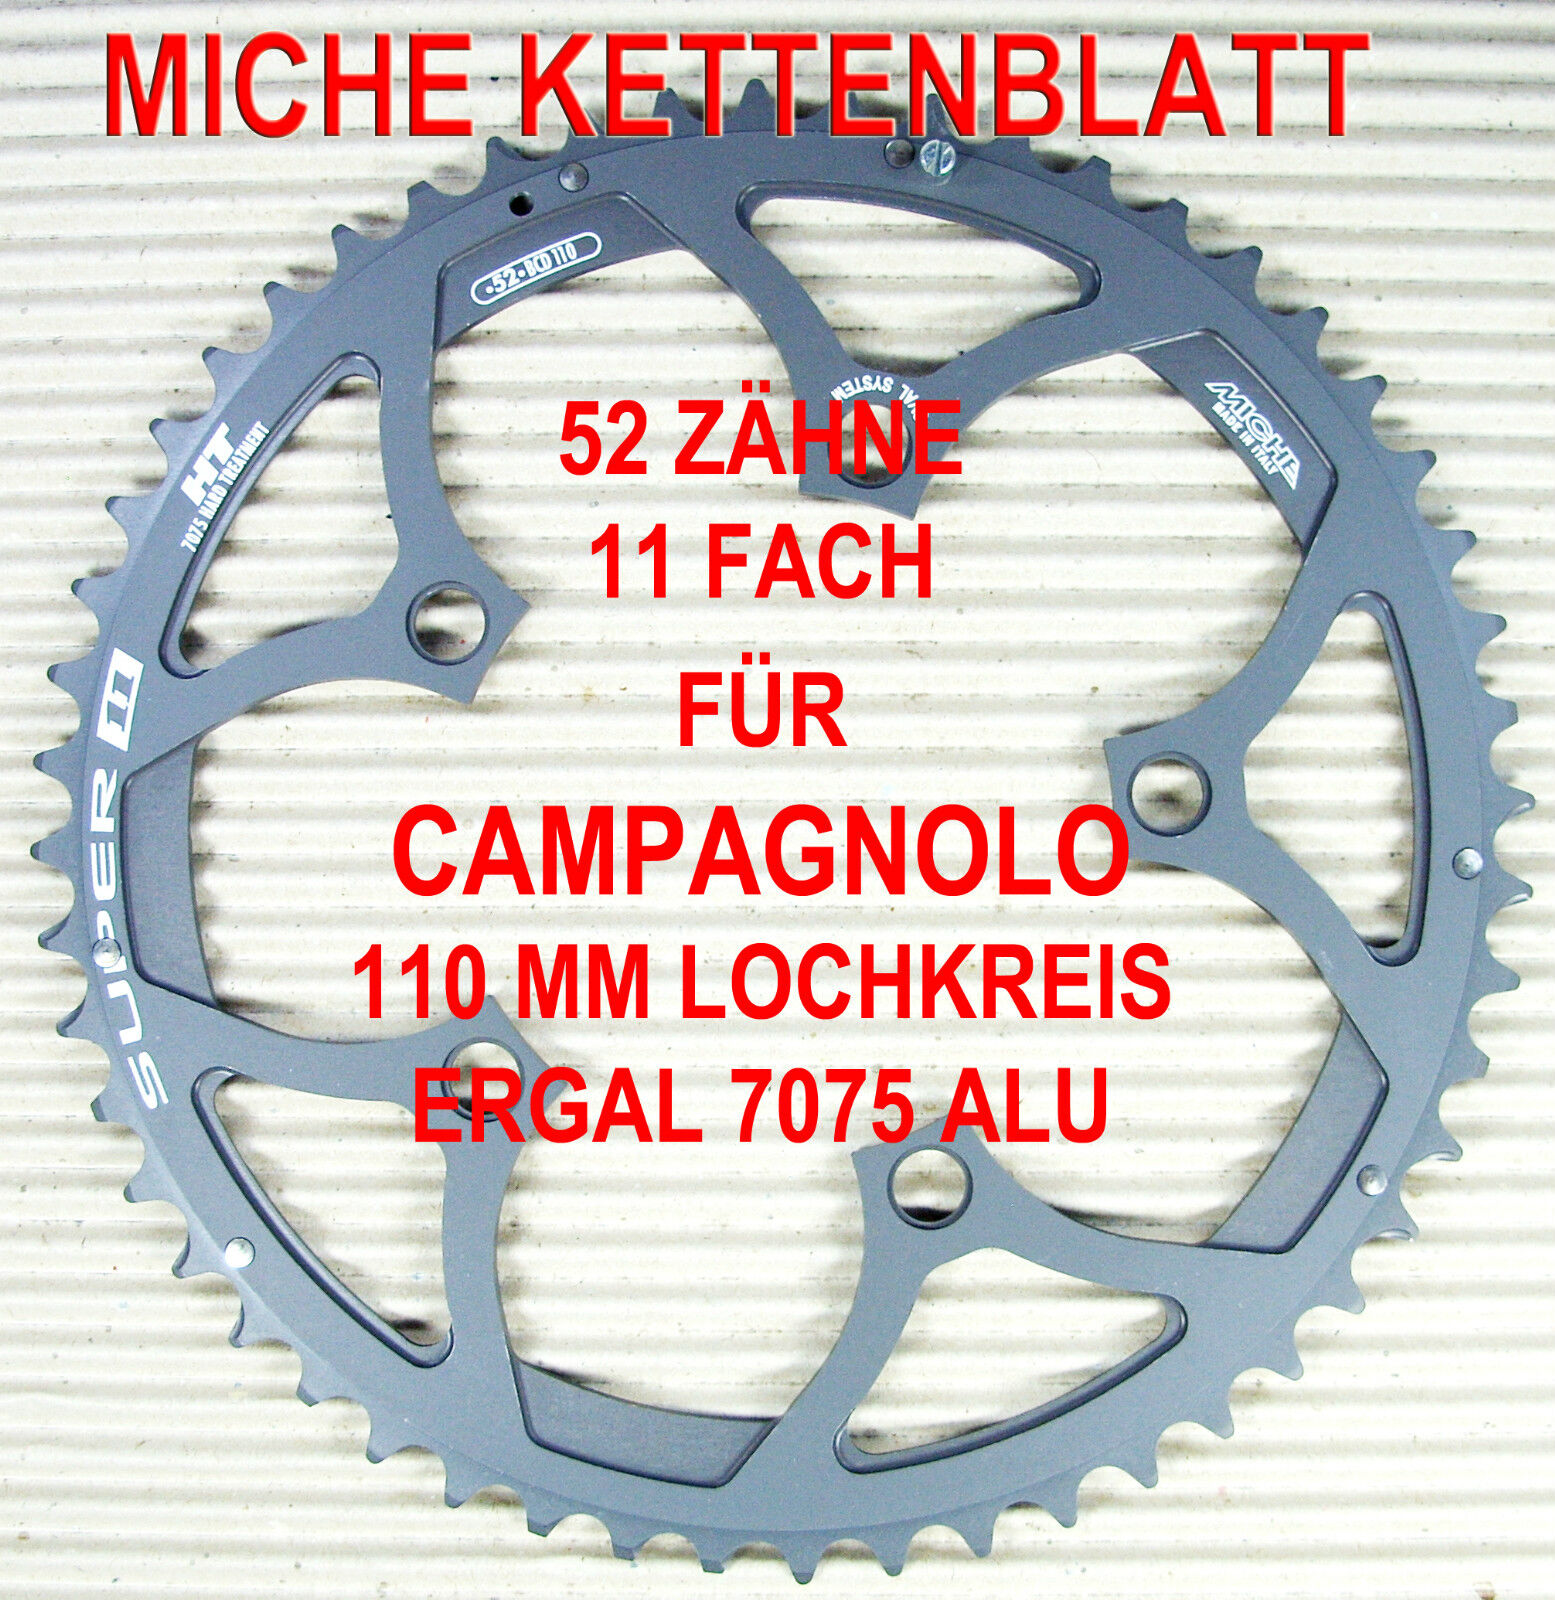 MICHE KETTENBLATT KETTENBLATT KETTENBLATT 11 FACH FÜR CAMPAGNOLO 110 MM AUSWAHL -  44 46 50 52 53 ZÄHNE ccbbc7